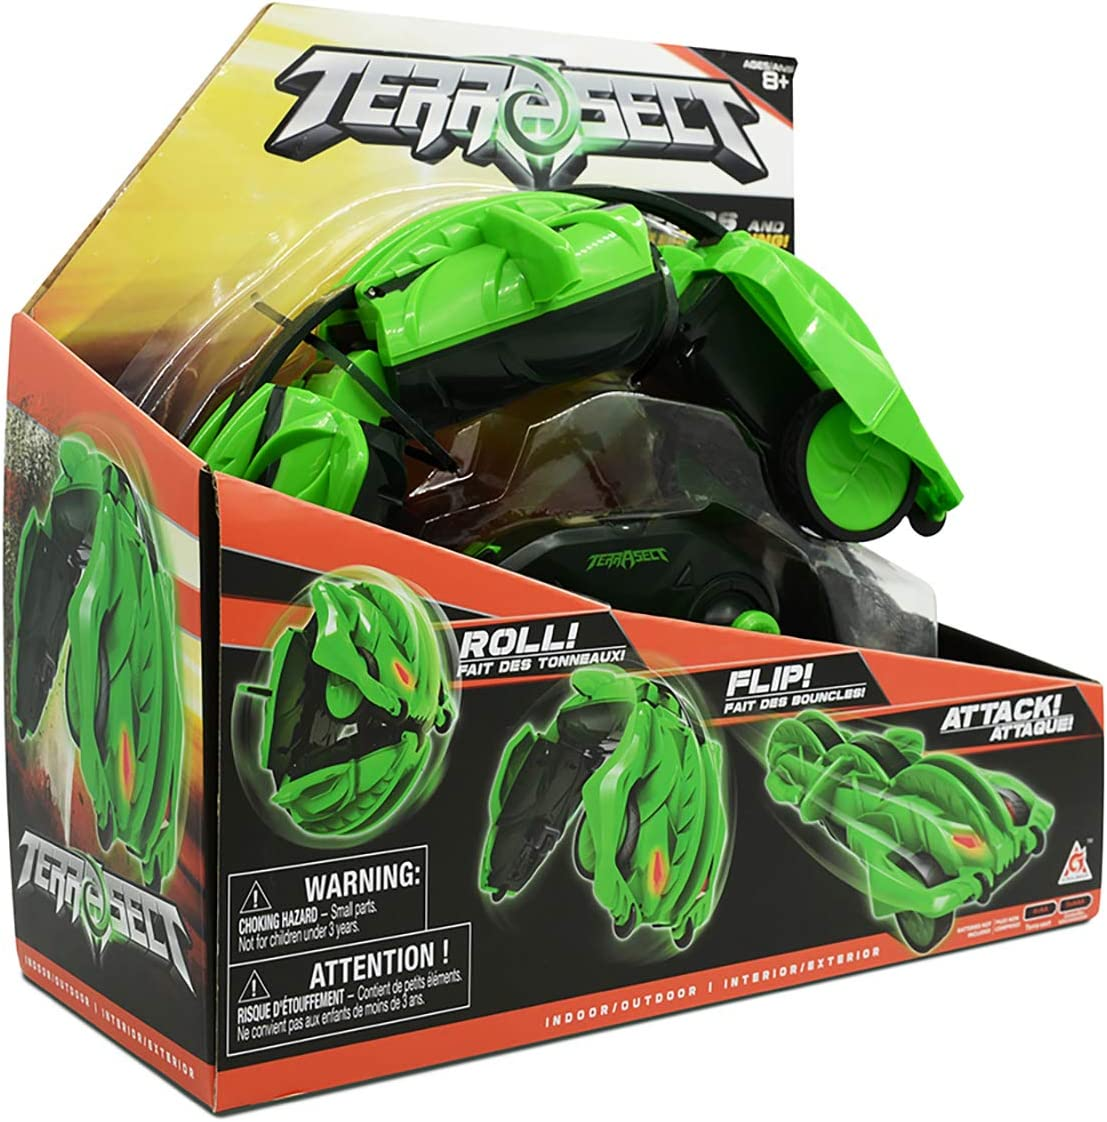 Drone Force Terrasect Remote Relentless Rolling Reptile 35cm 2.4 Gigahertz Controller 63% OFF £14.99 @ Amazon